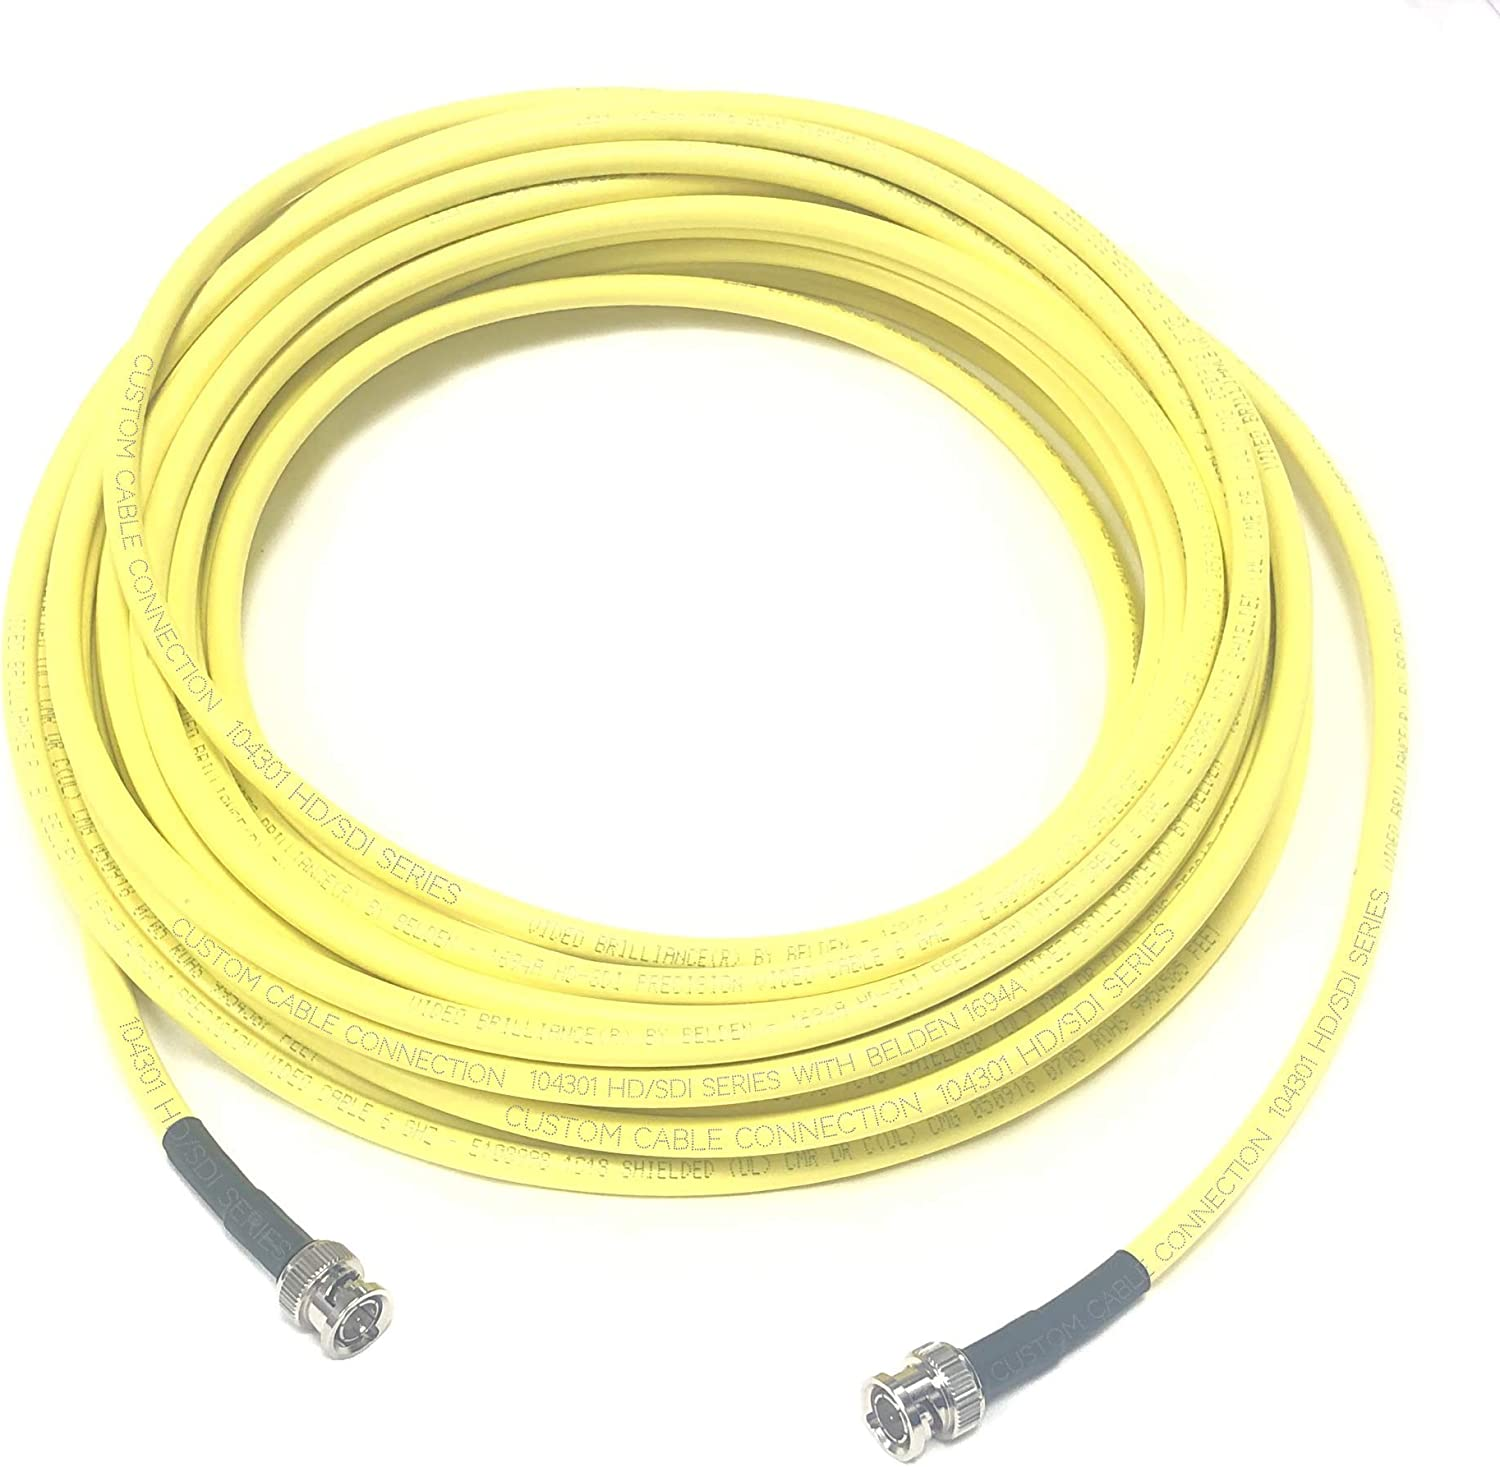 RG6 Digital Video BNC Male to Male Cable Purple New 75/' Belden 1694A SDI-HDTV